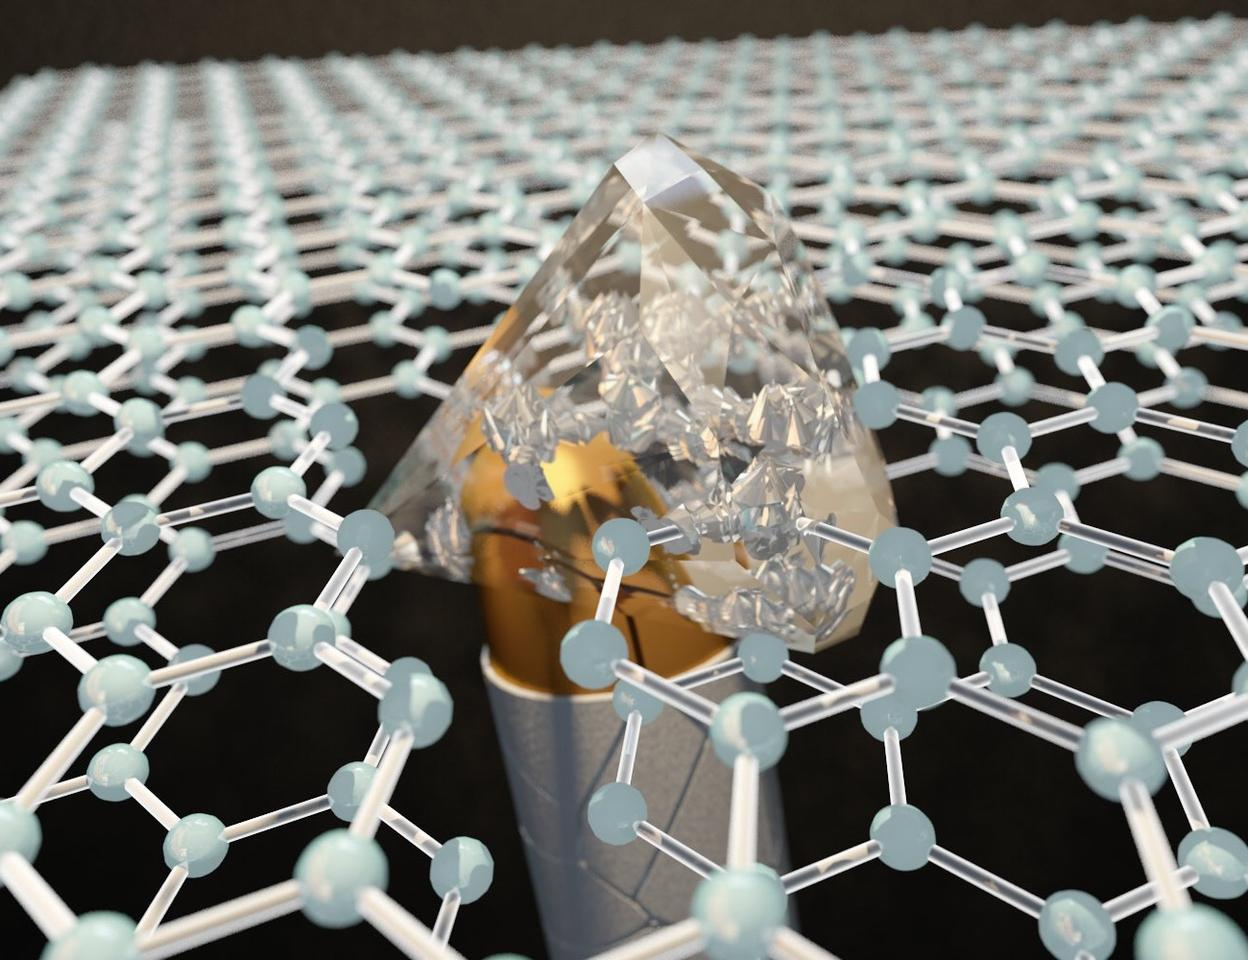 Made of two stacked layers of graphene, diamene temporarily becomes harder than bulk diamonds under impact